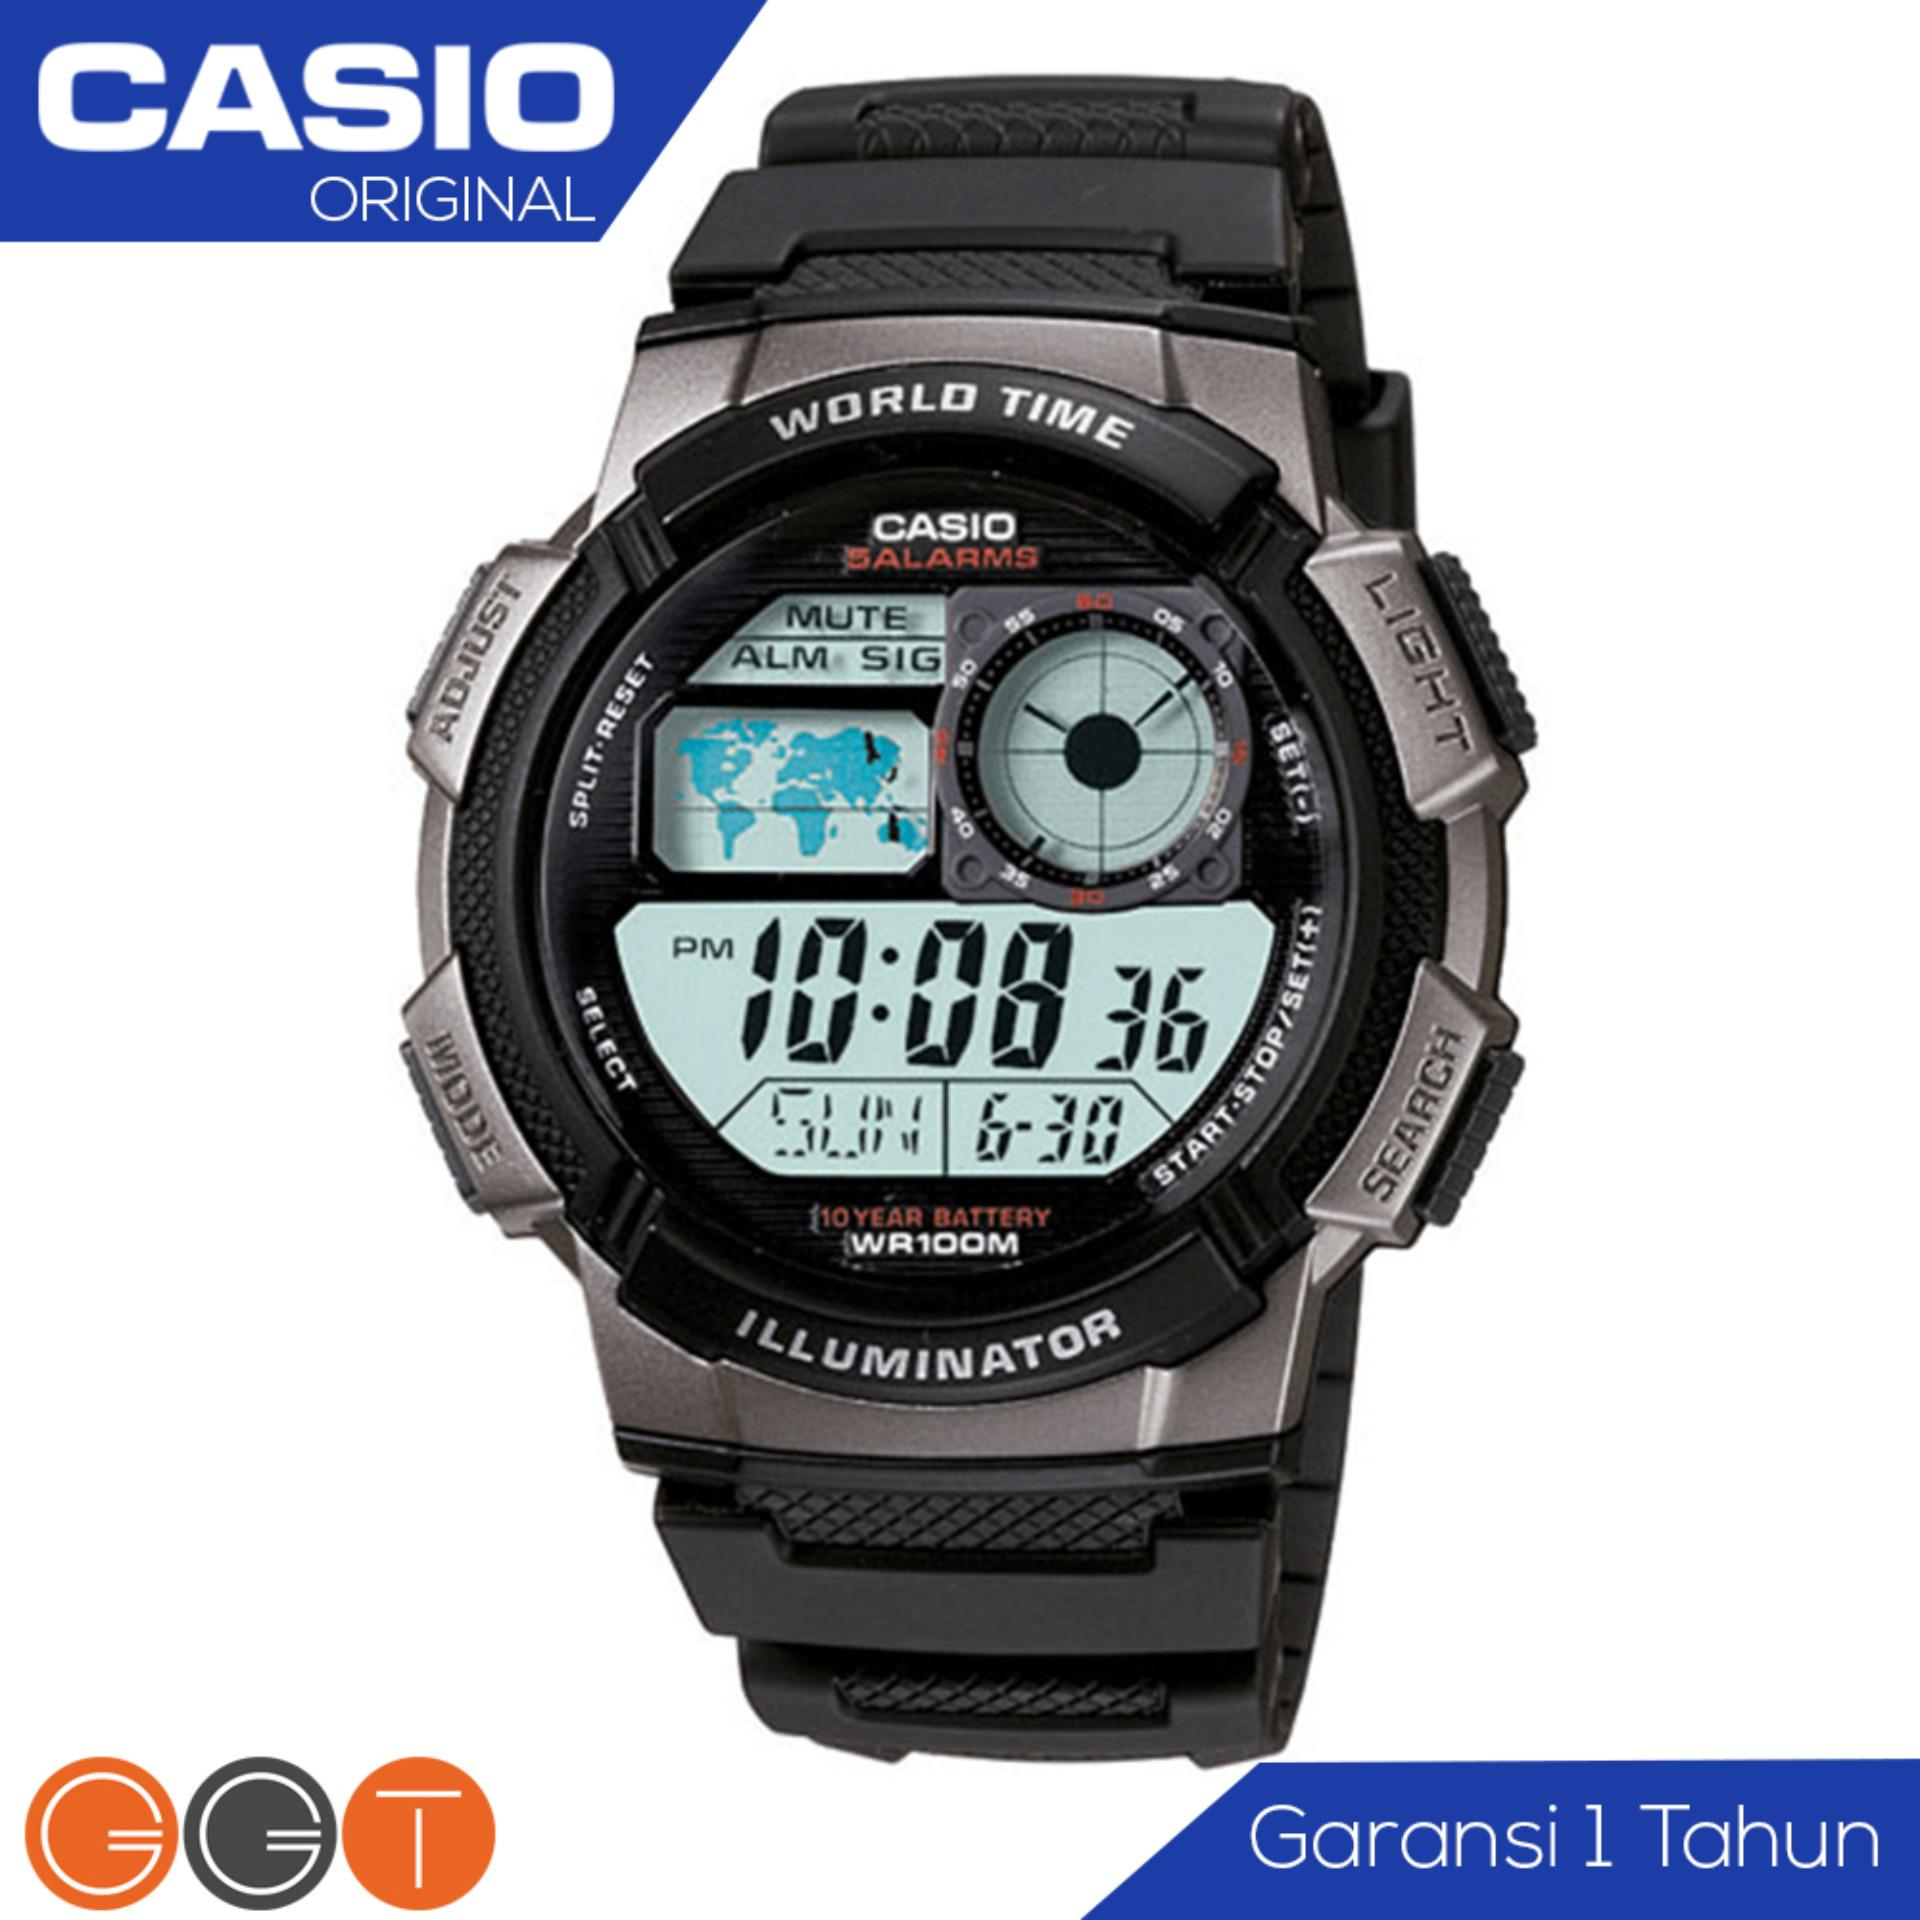 CASIO Illuminator AE-1000W - Jam Tangan Pria - Tali Karet Rubber Resin - Digital Movement Anti Air